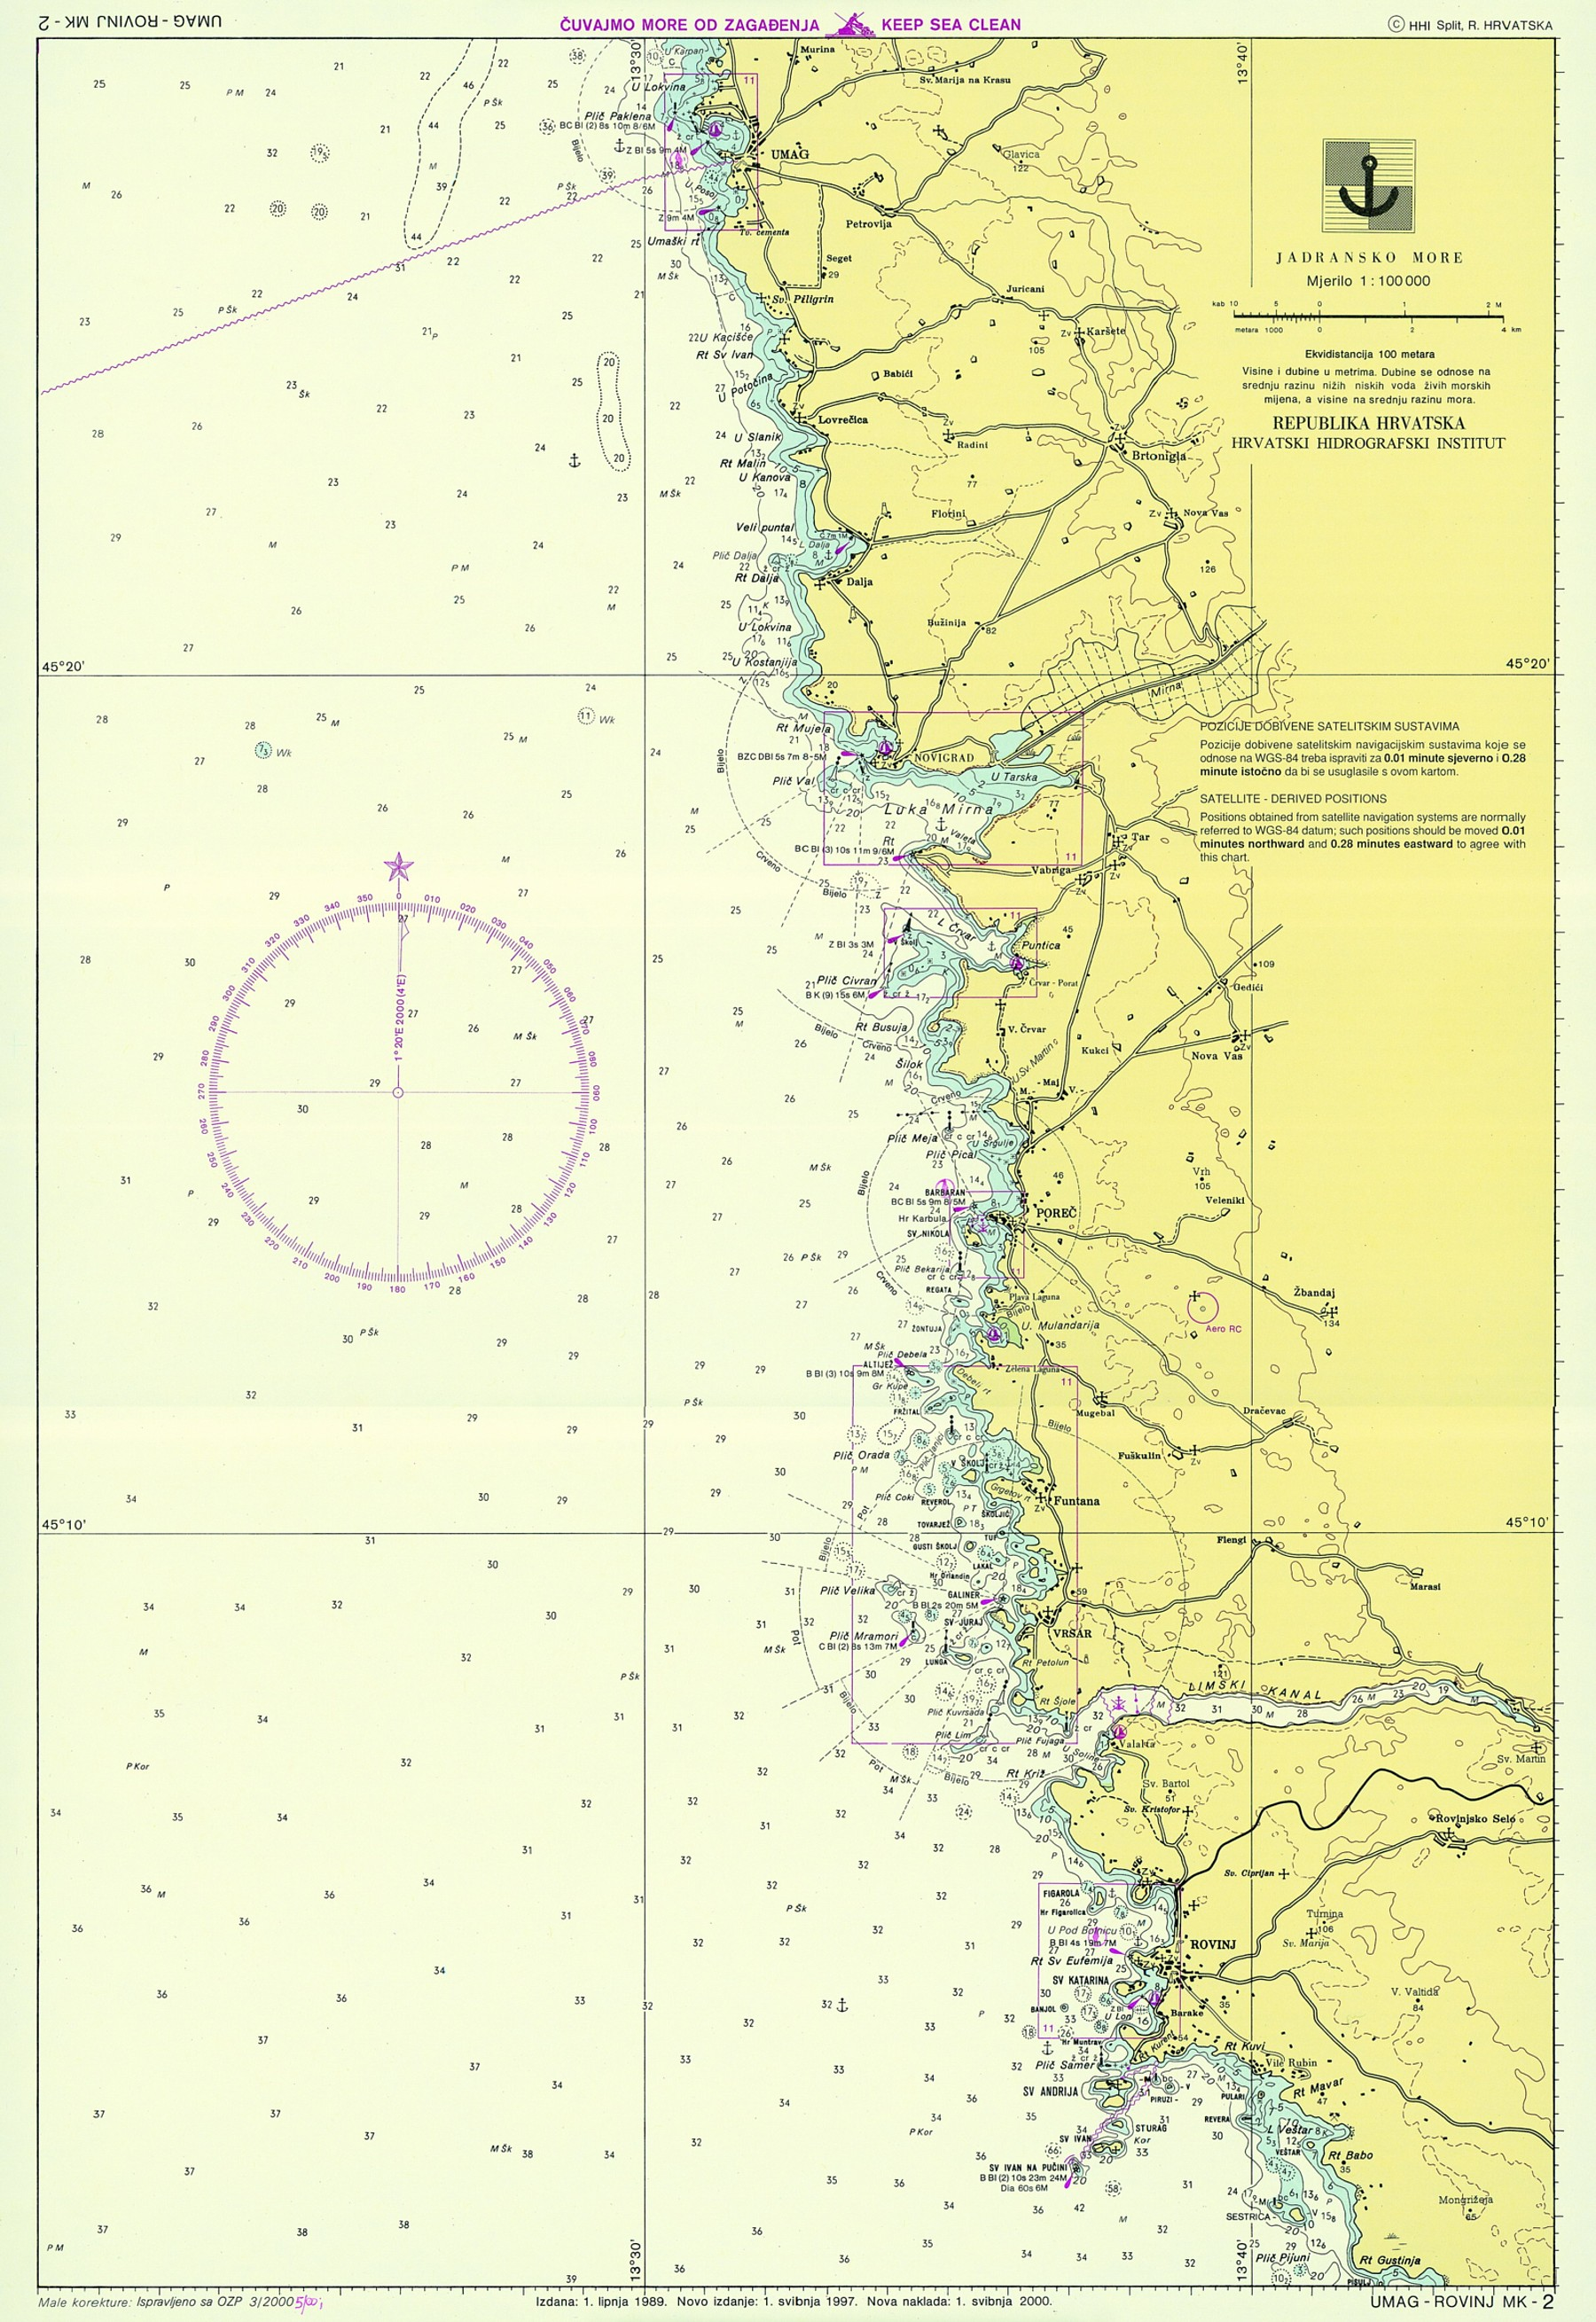 Sale Land For Property İn ıstria Croatian Nautical Maps